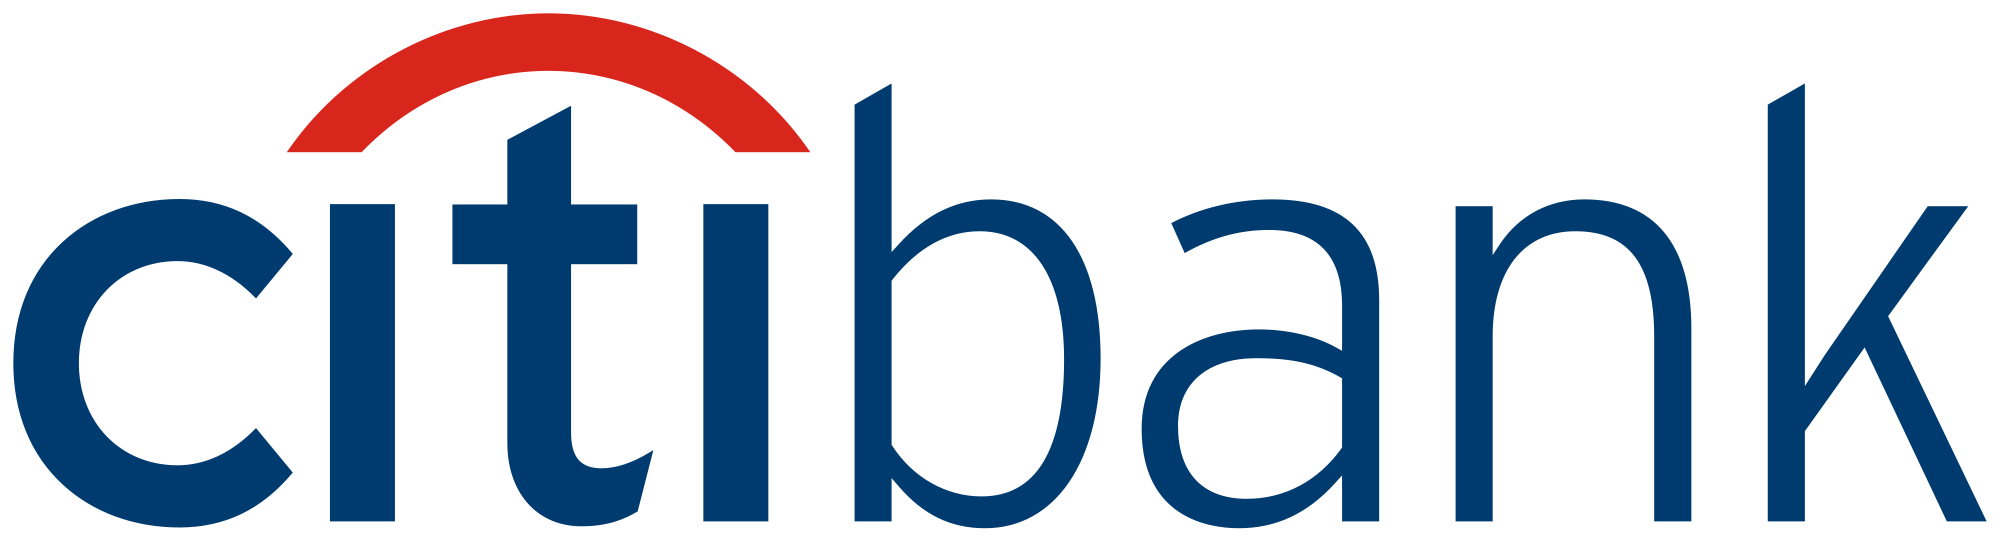 Logotipo del Citibank Colombia